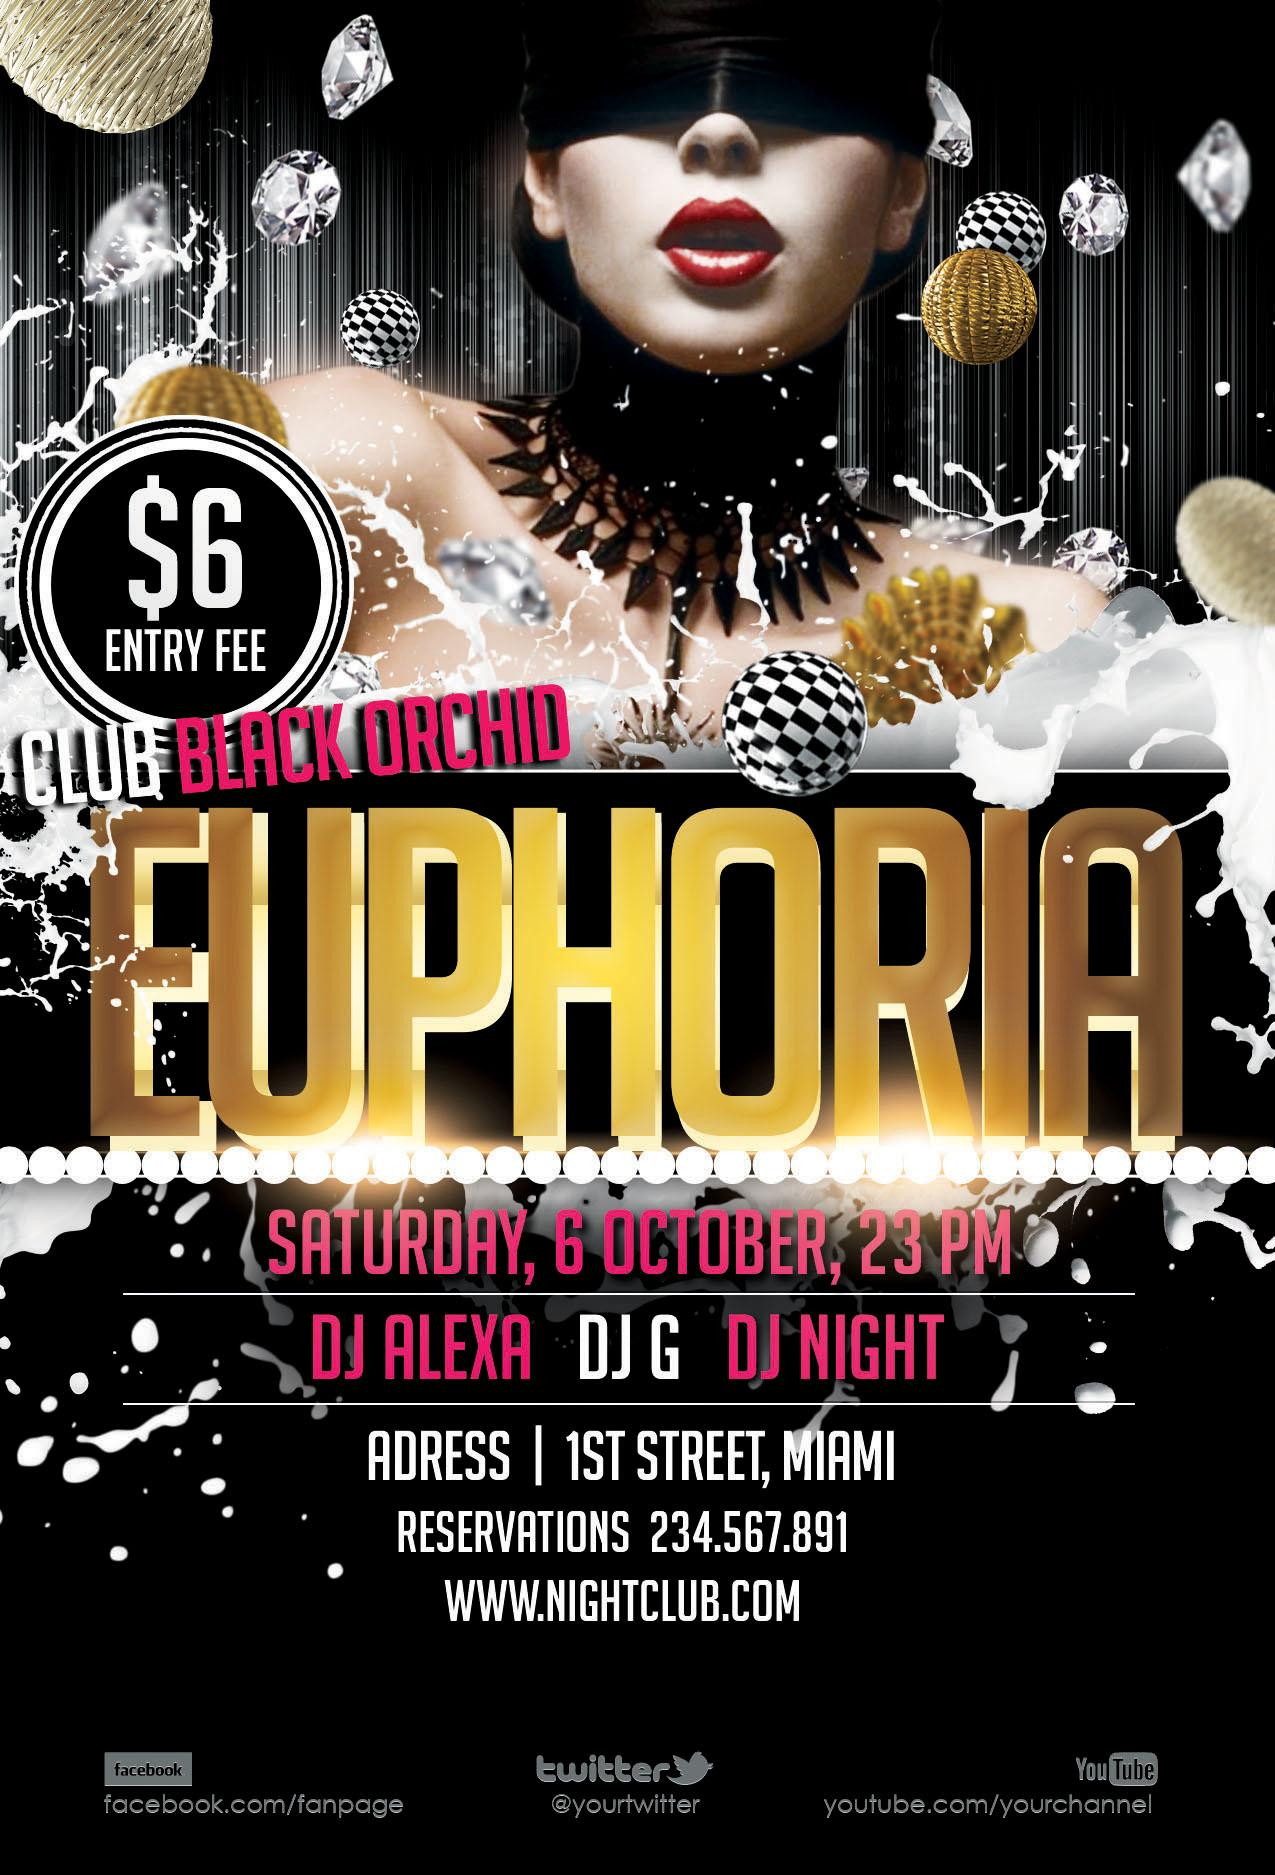 Free Photoshop Nightclub Flyer Templates